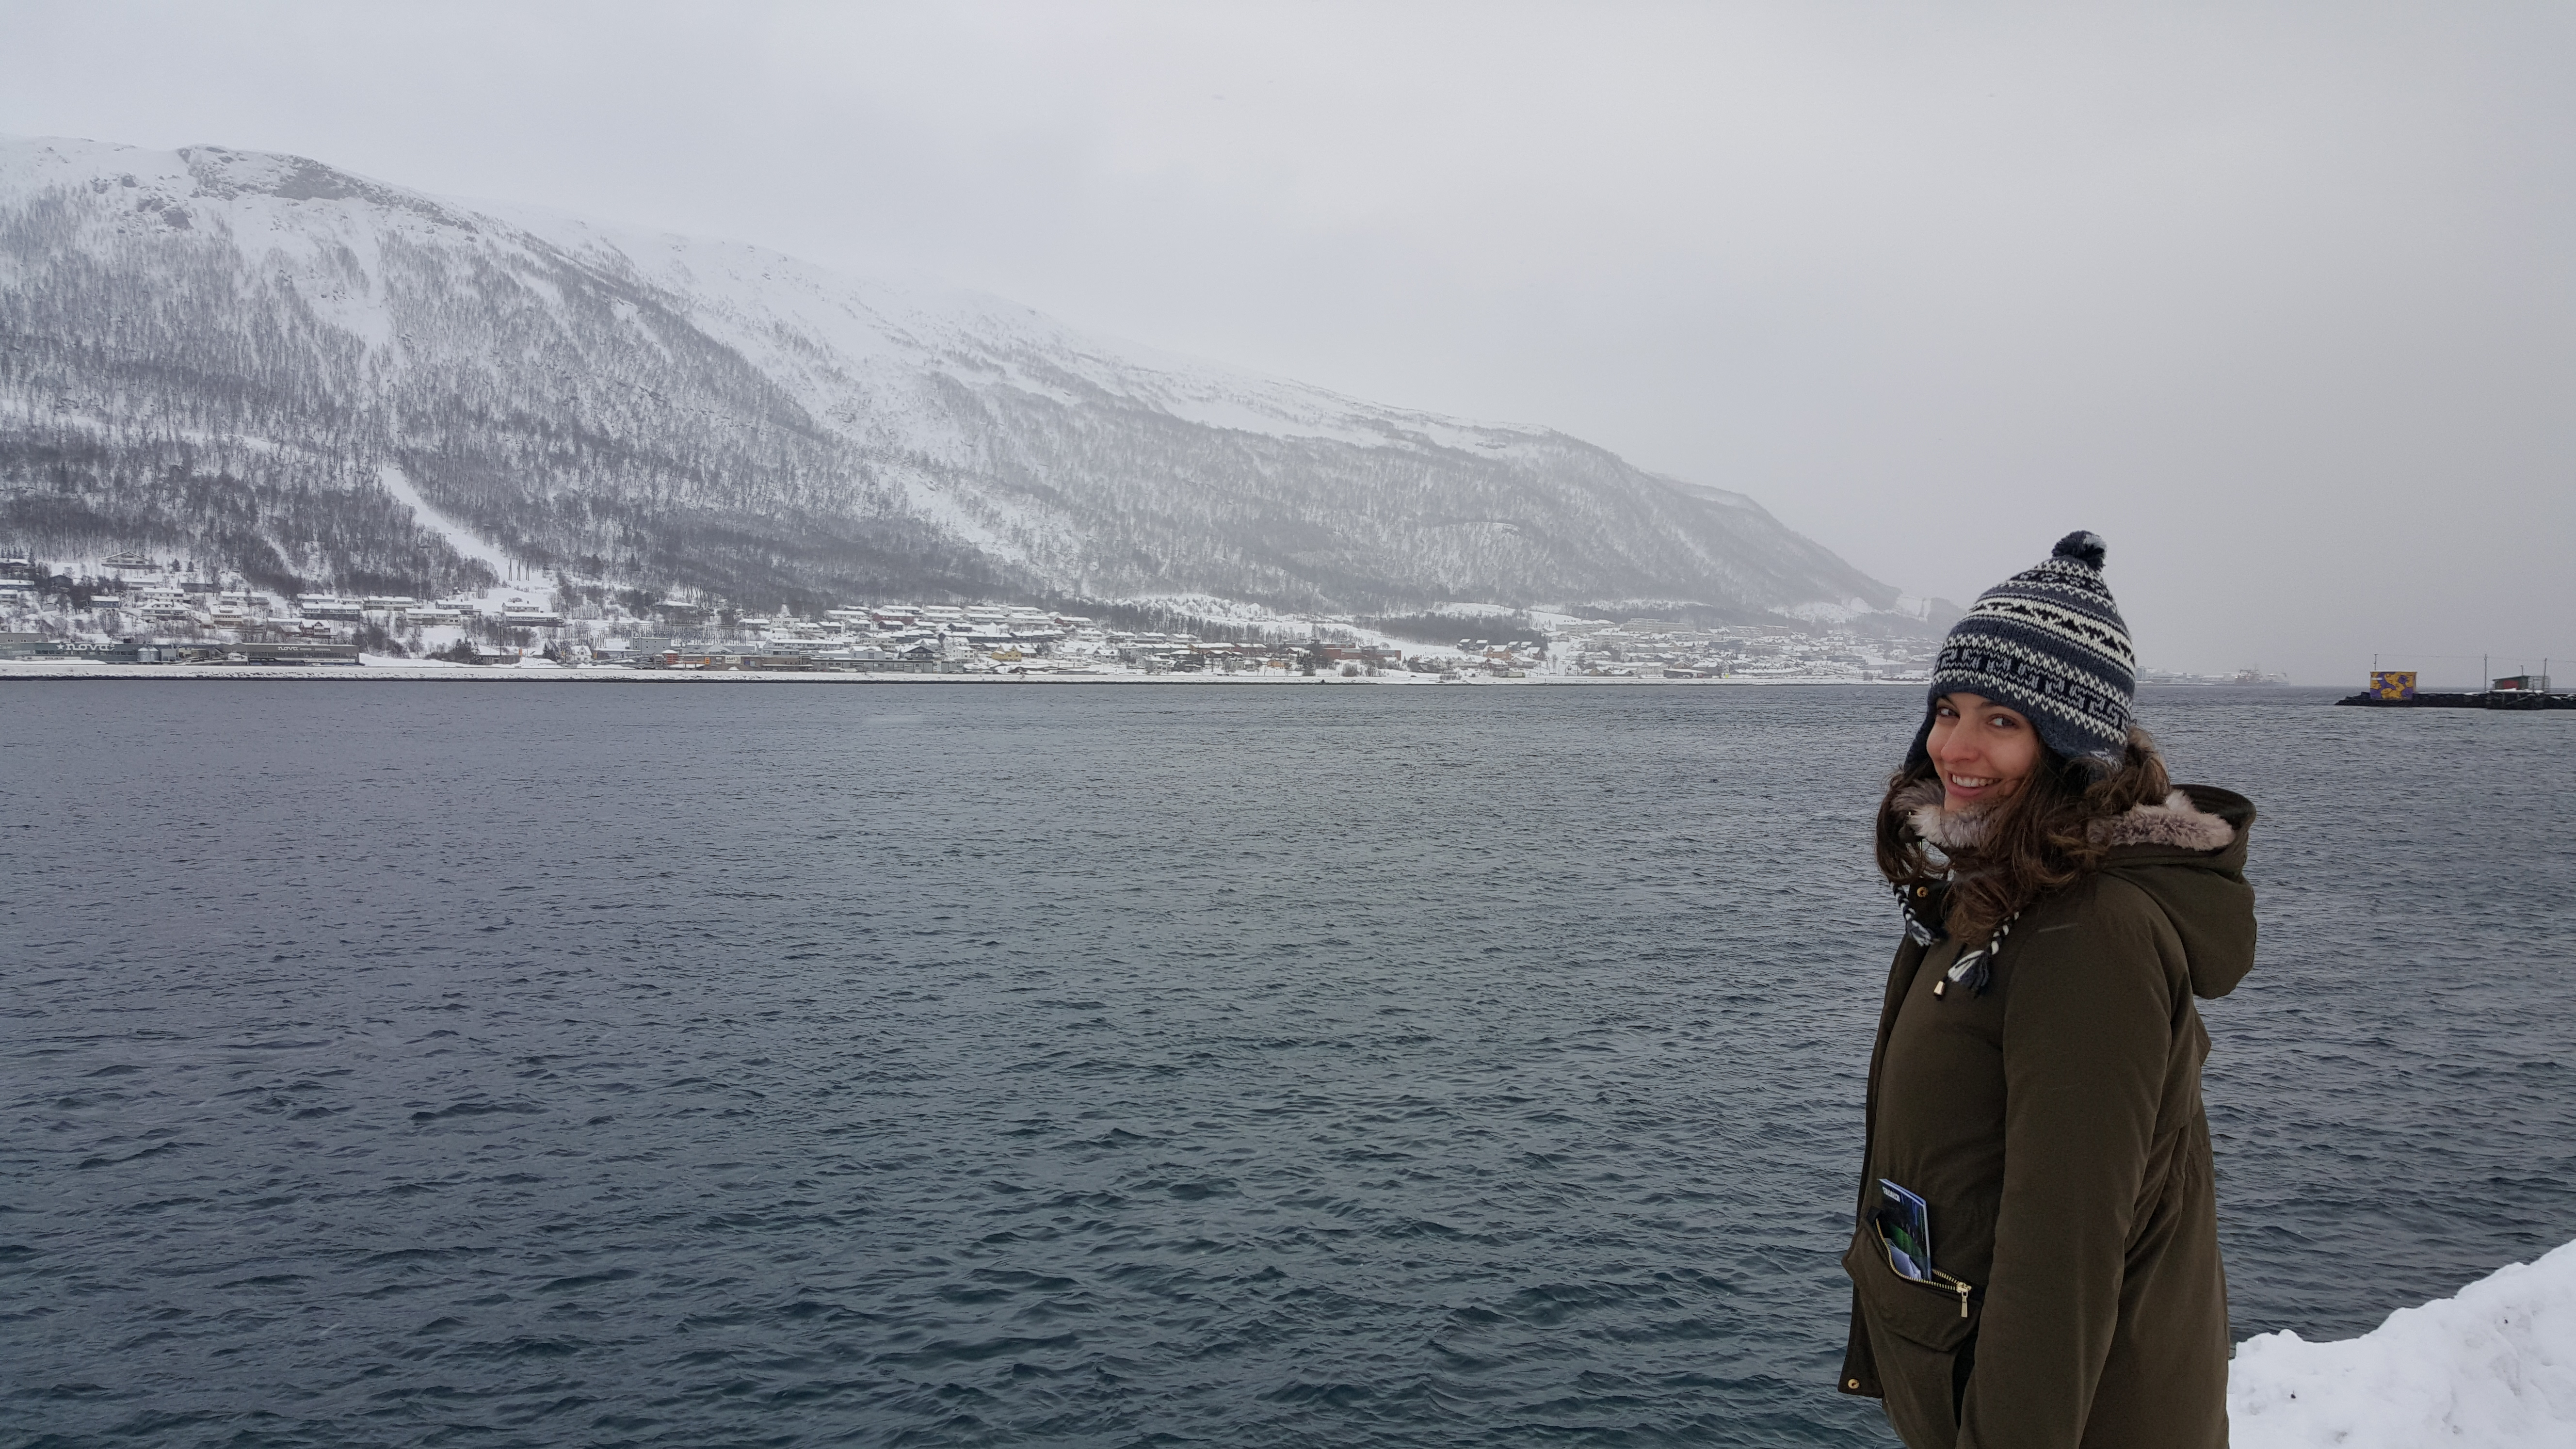 Strolling around the beautiful snowing coast of Tromso